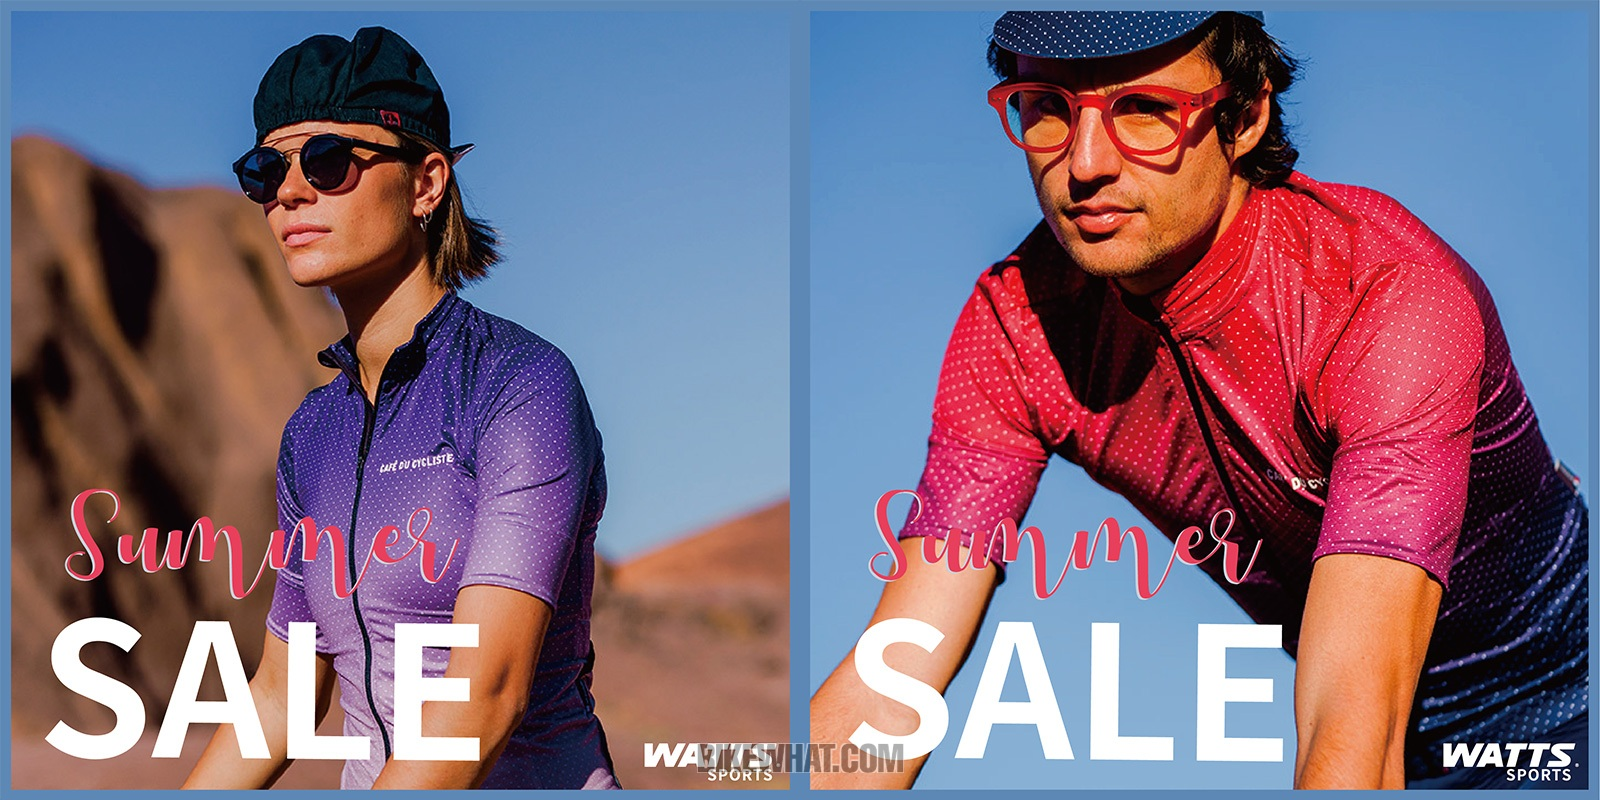 news_WATTS_SUMMER SALE_1.jpg